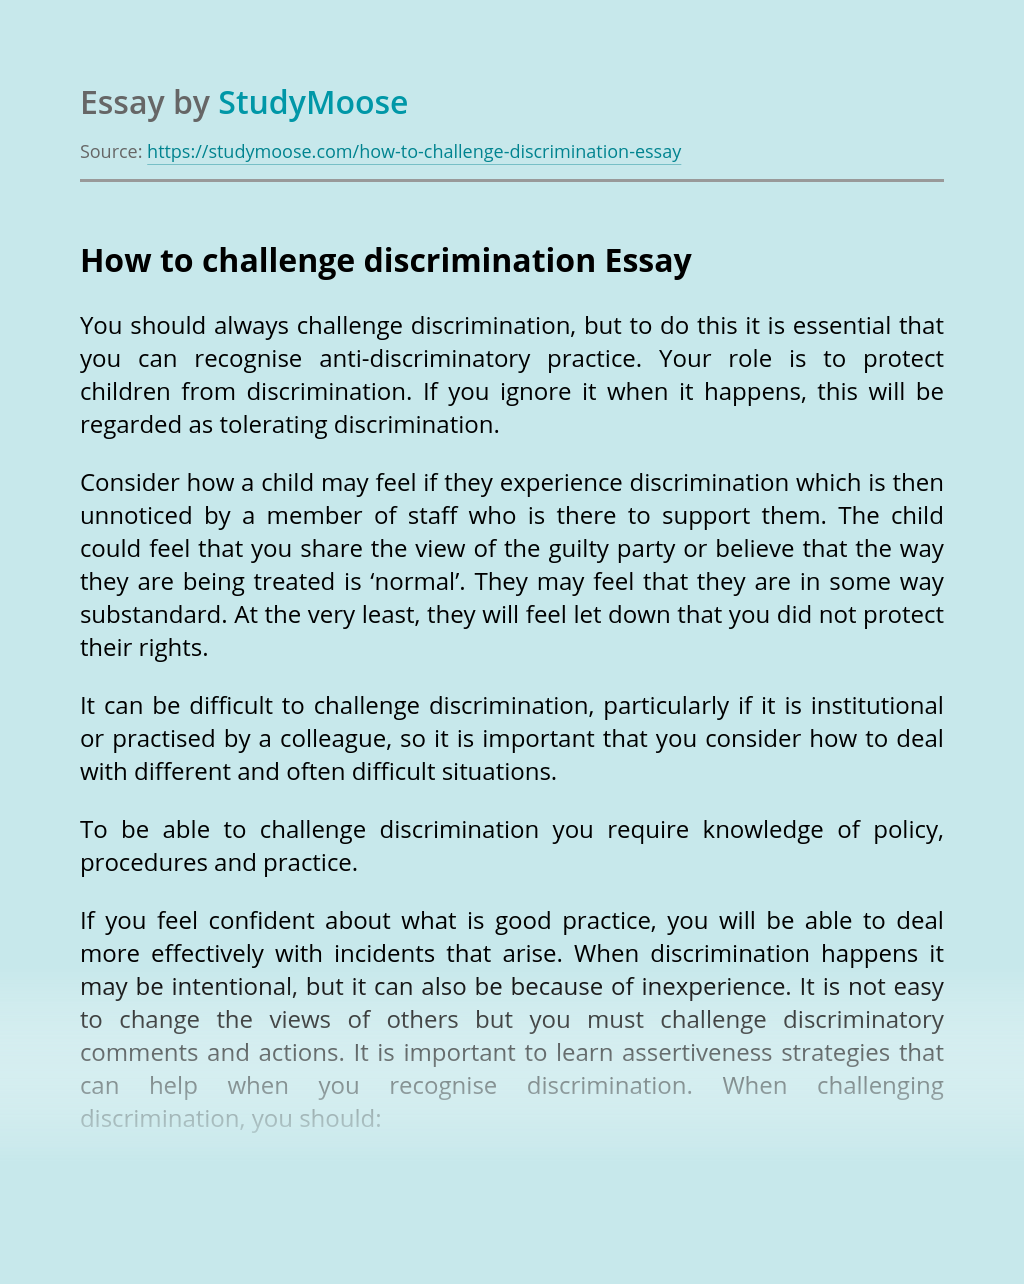 How to challenge discrimination